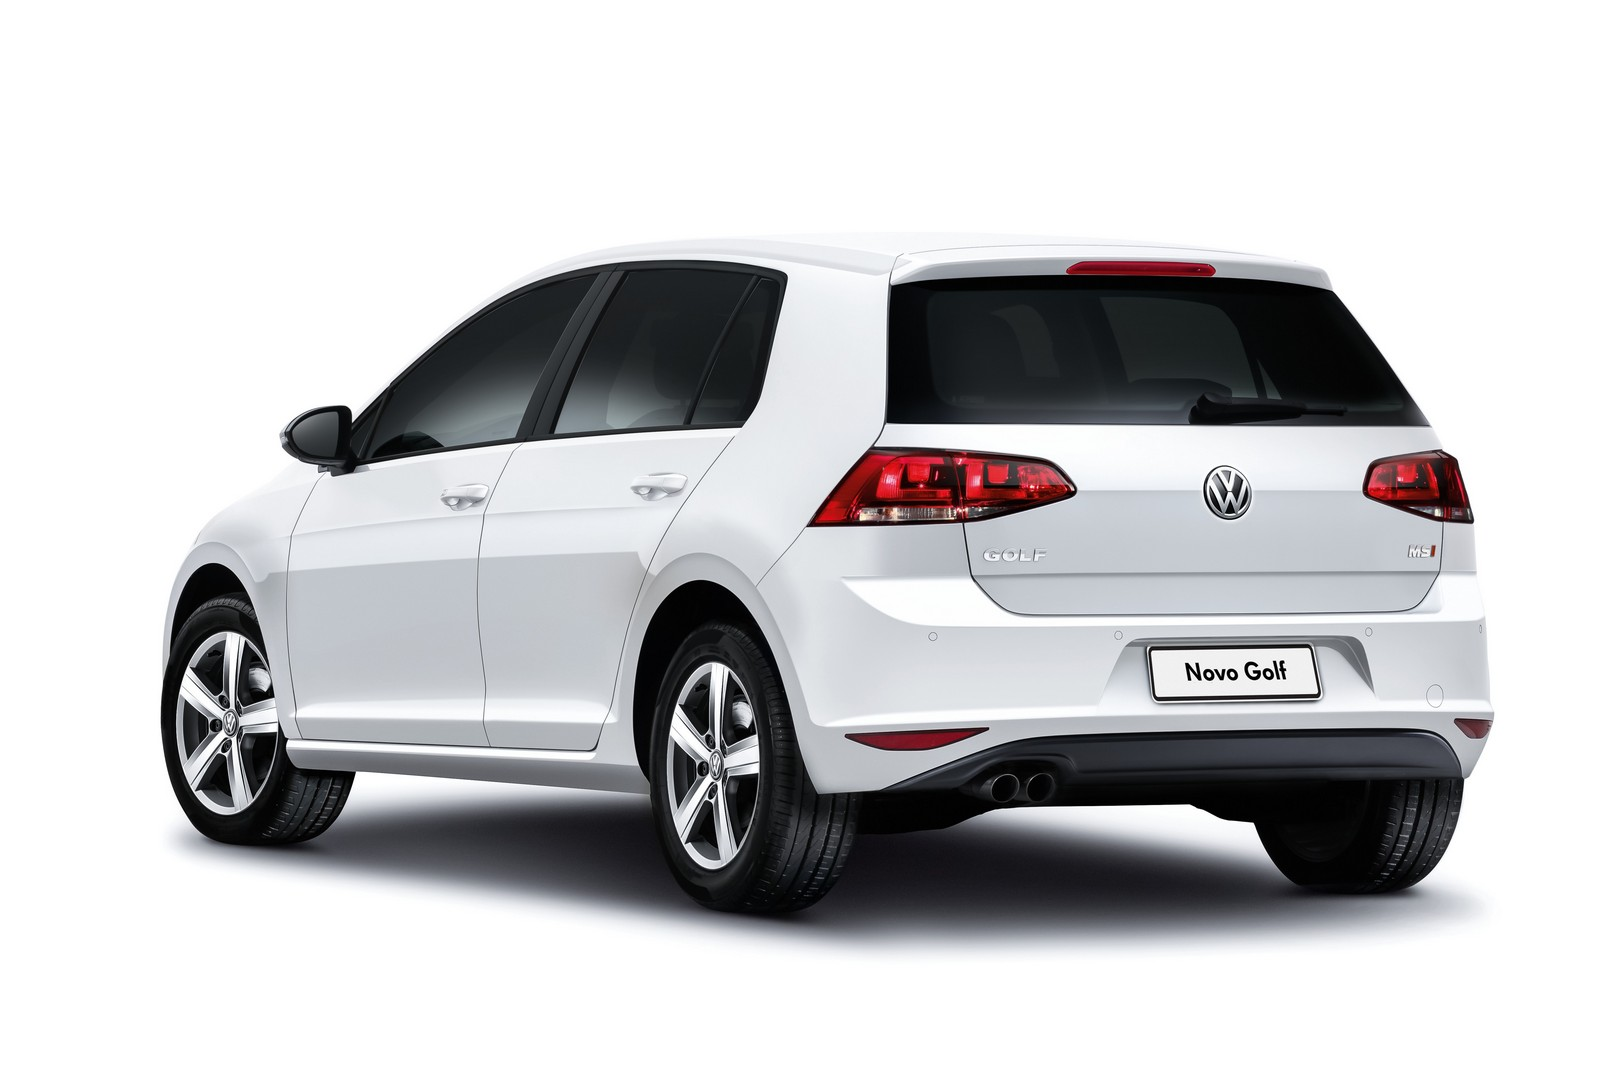 vw apresenta golf nacional com novos motores 1 6 e 1 4 tsi. Black Bedroom Furniture Sets. Home Design Ideas